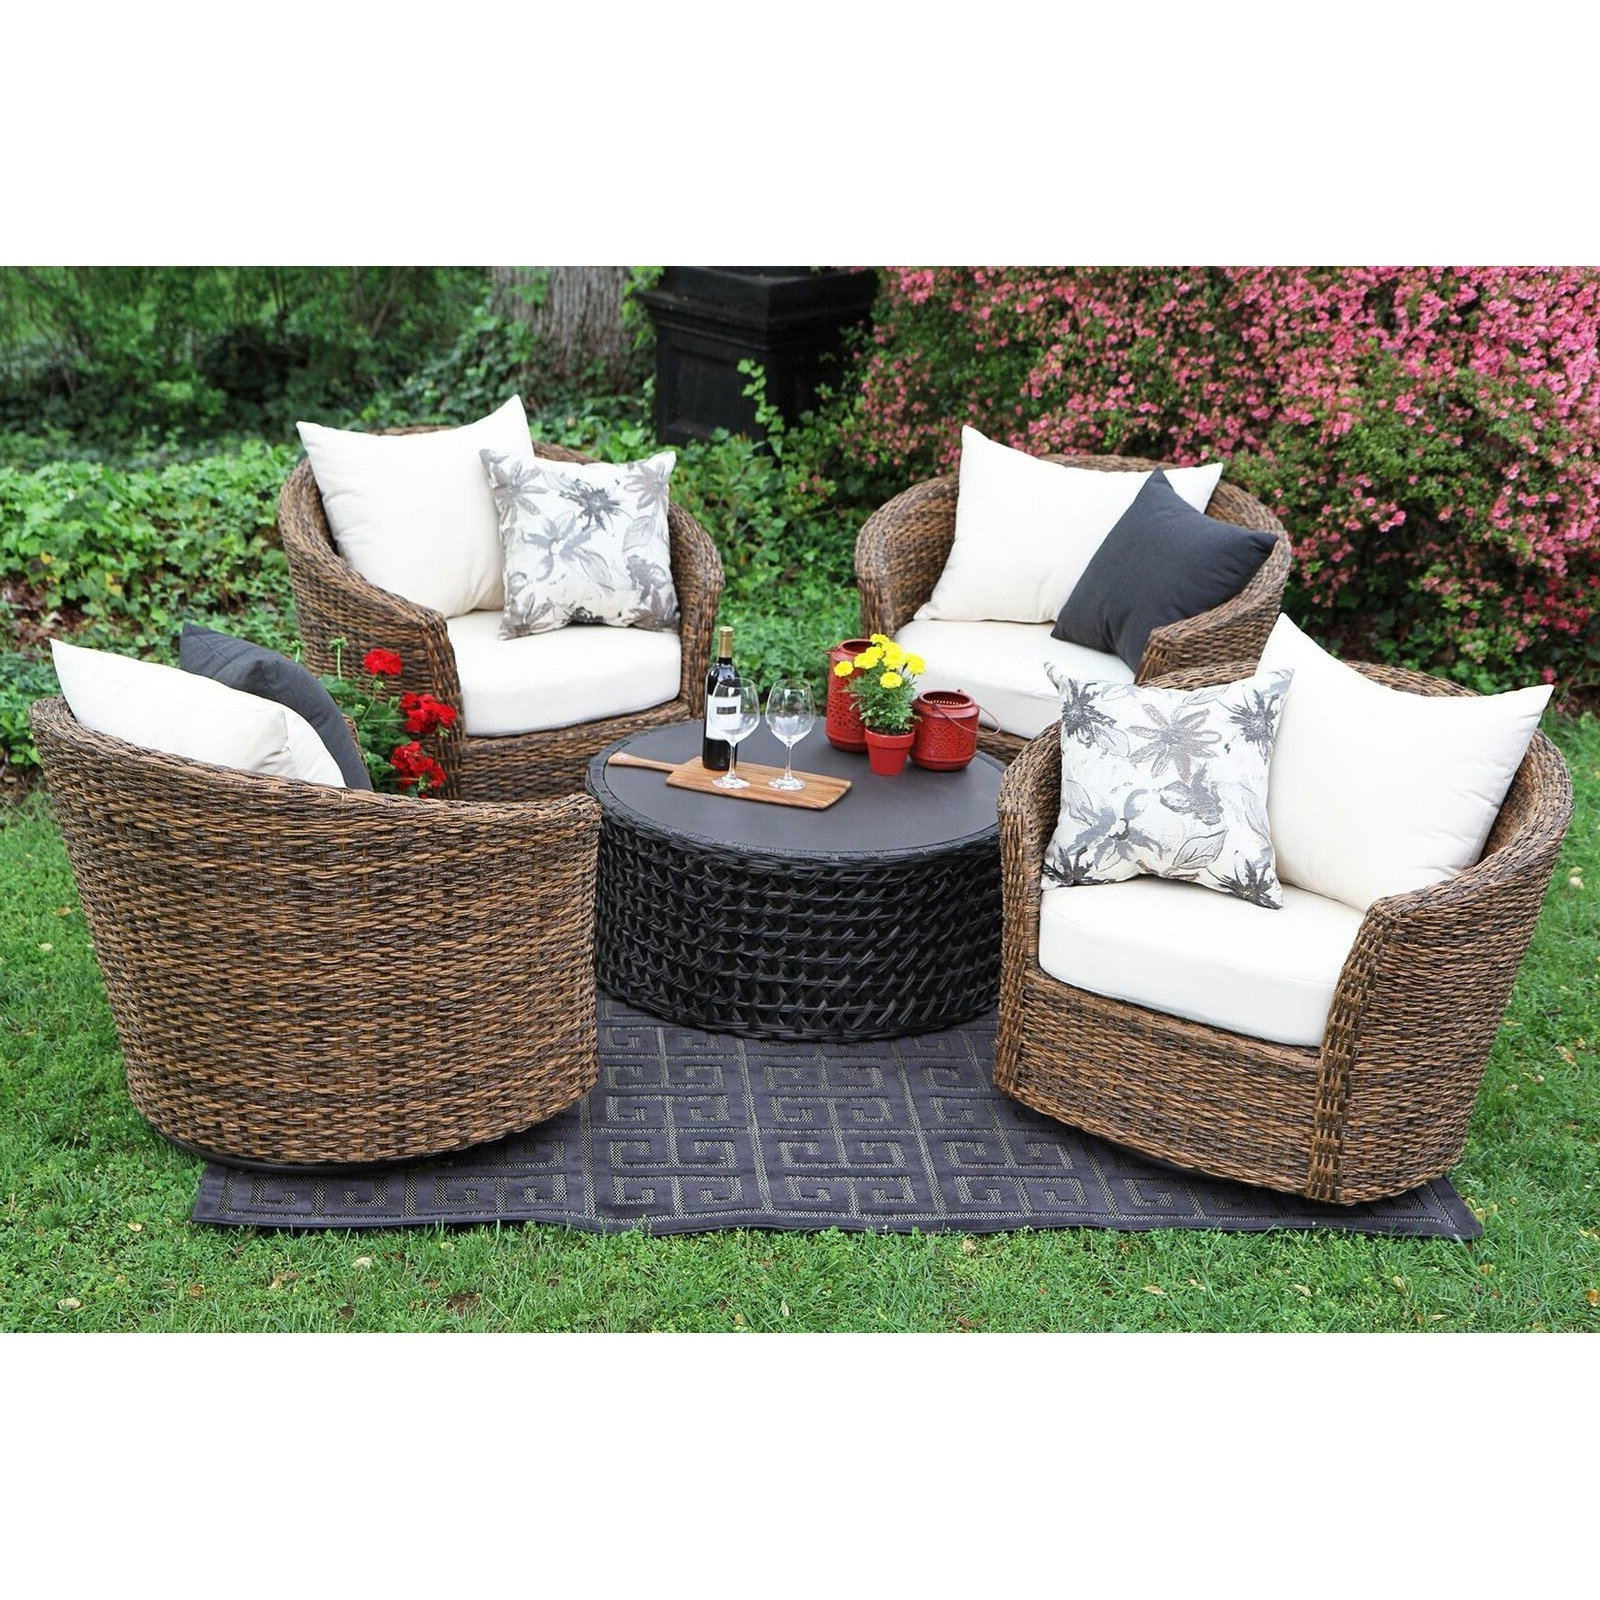 Patio Conversation Sets Without Cushions Within Latest Patio : Kroger Patio Furniture Kroger Outdoor Furniture (View 13 of 20)